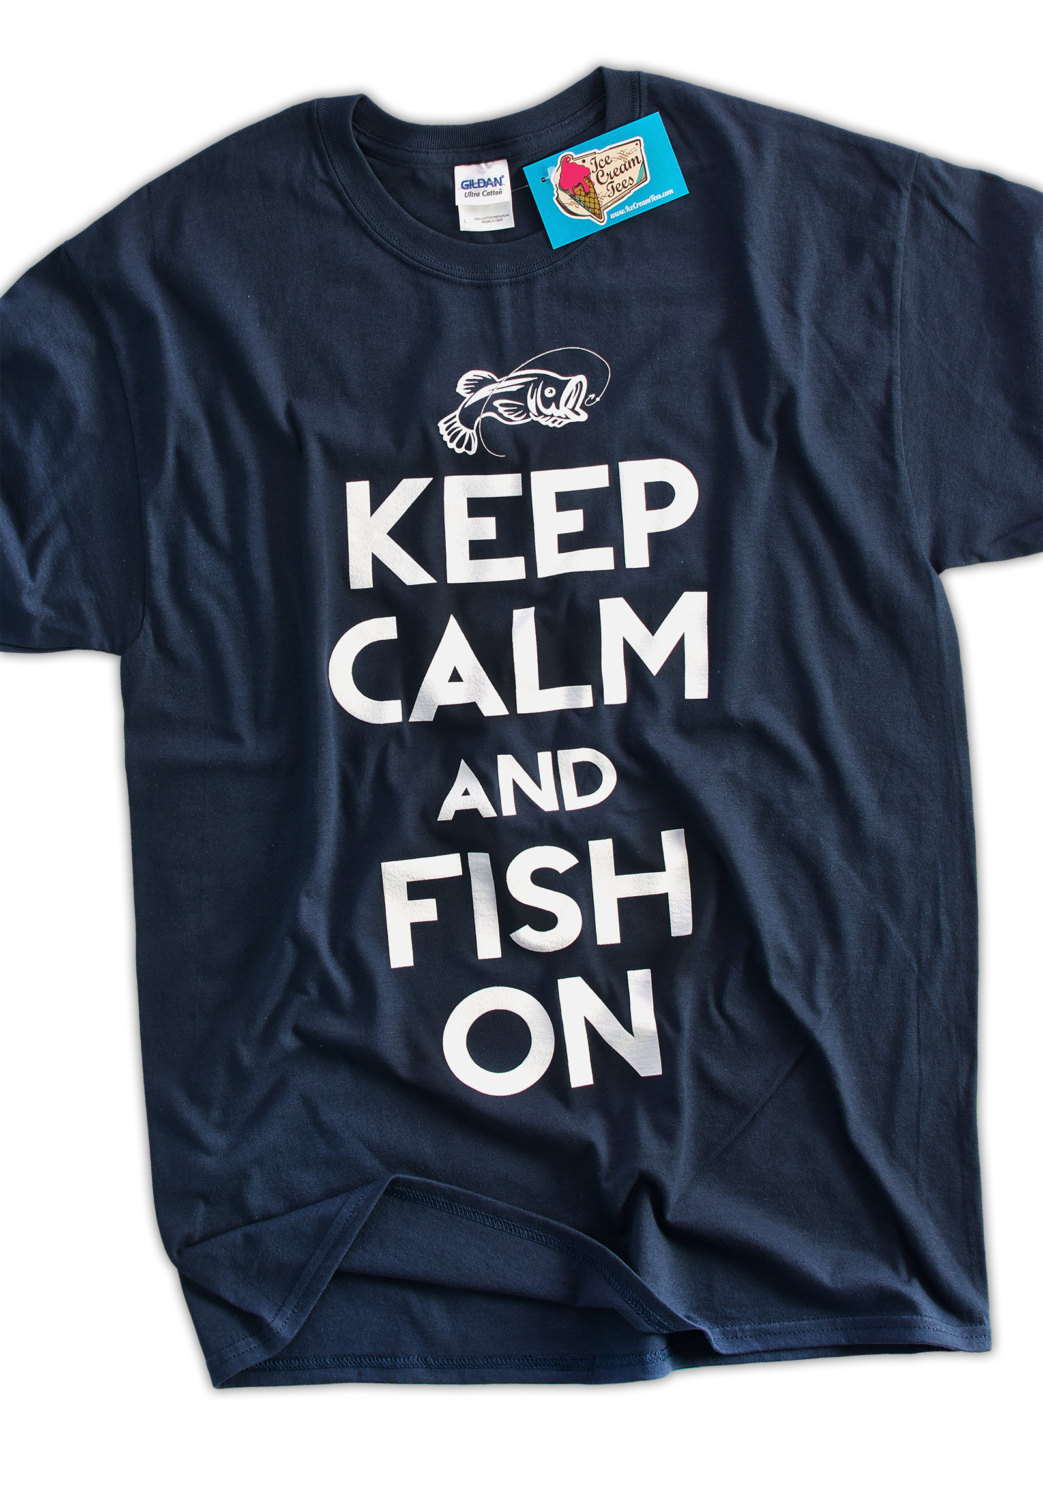 Funny fishing t shirt keep calm and fish on by icecreamtees for Funny fishing t shirts